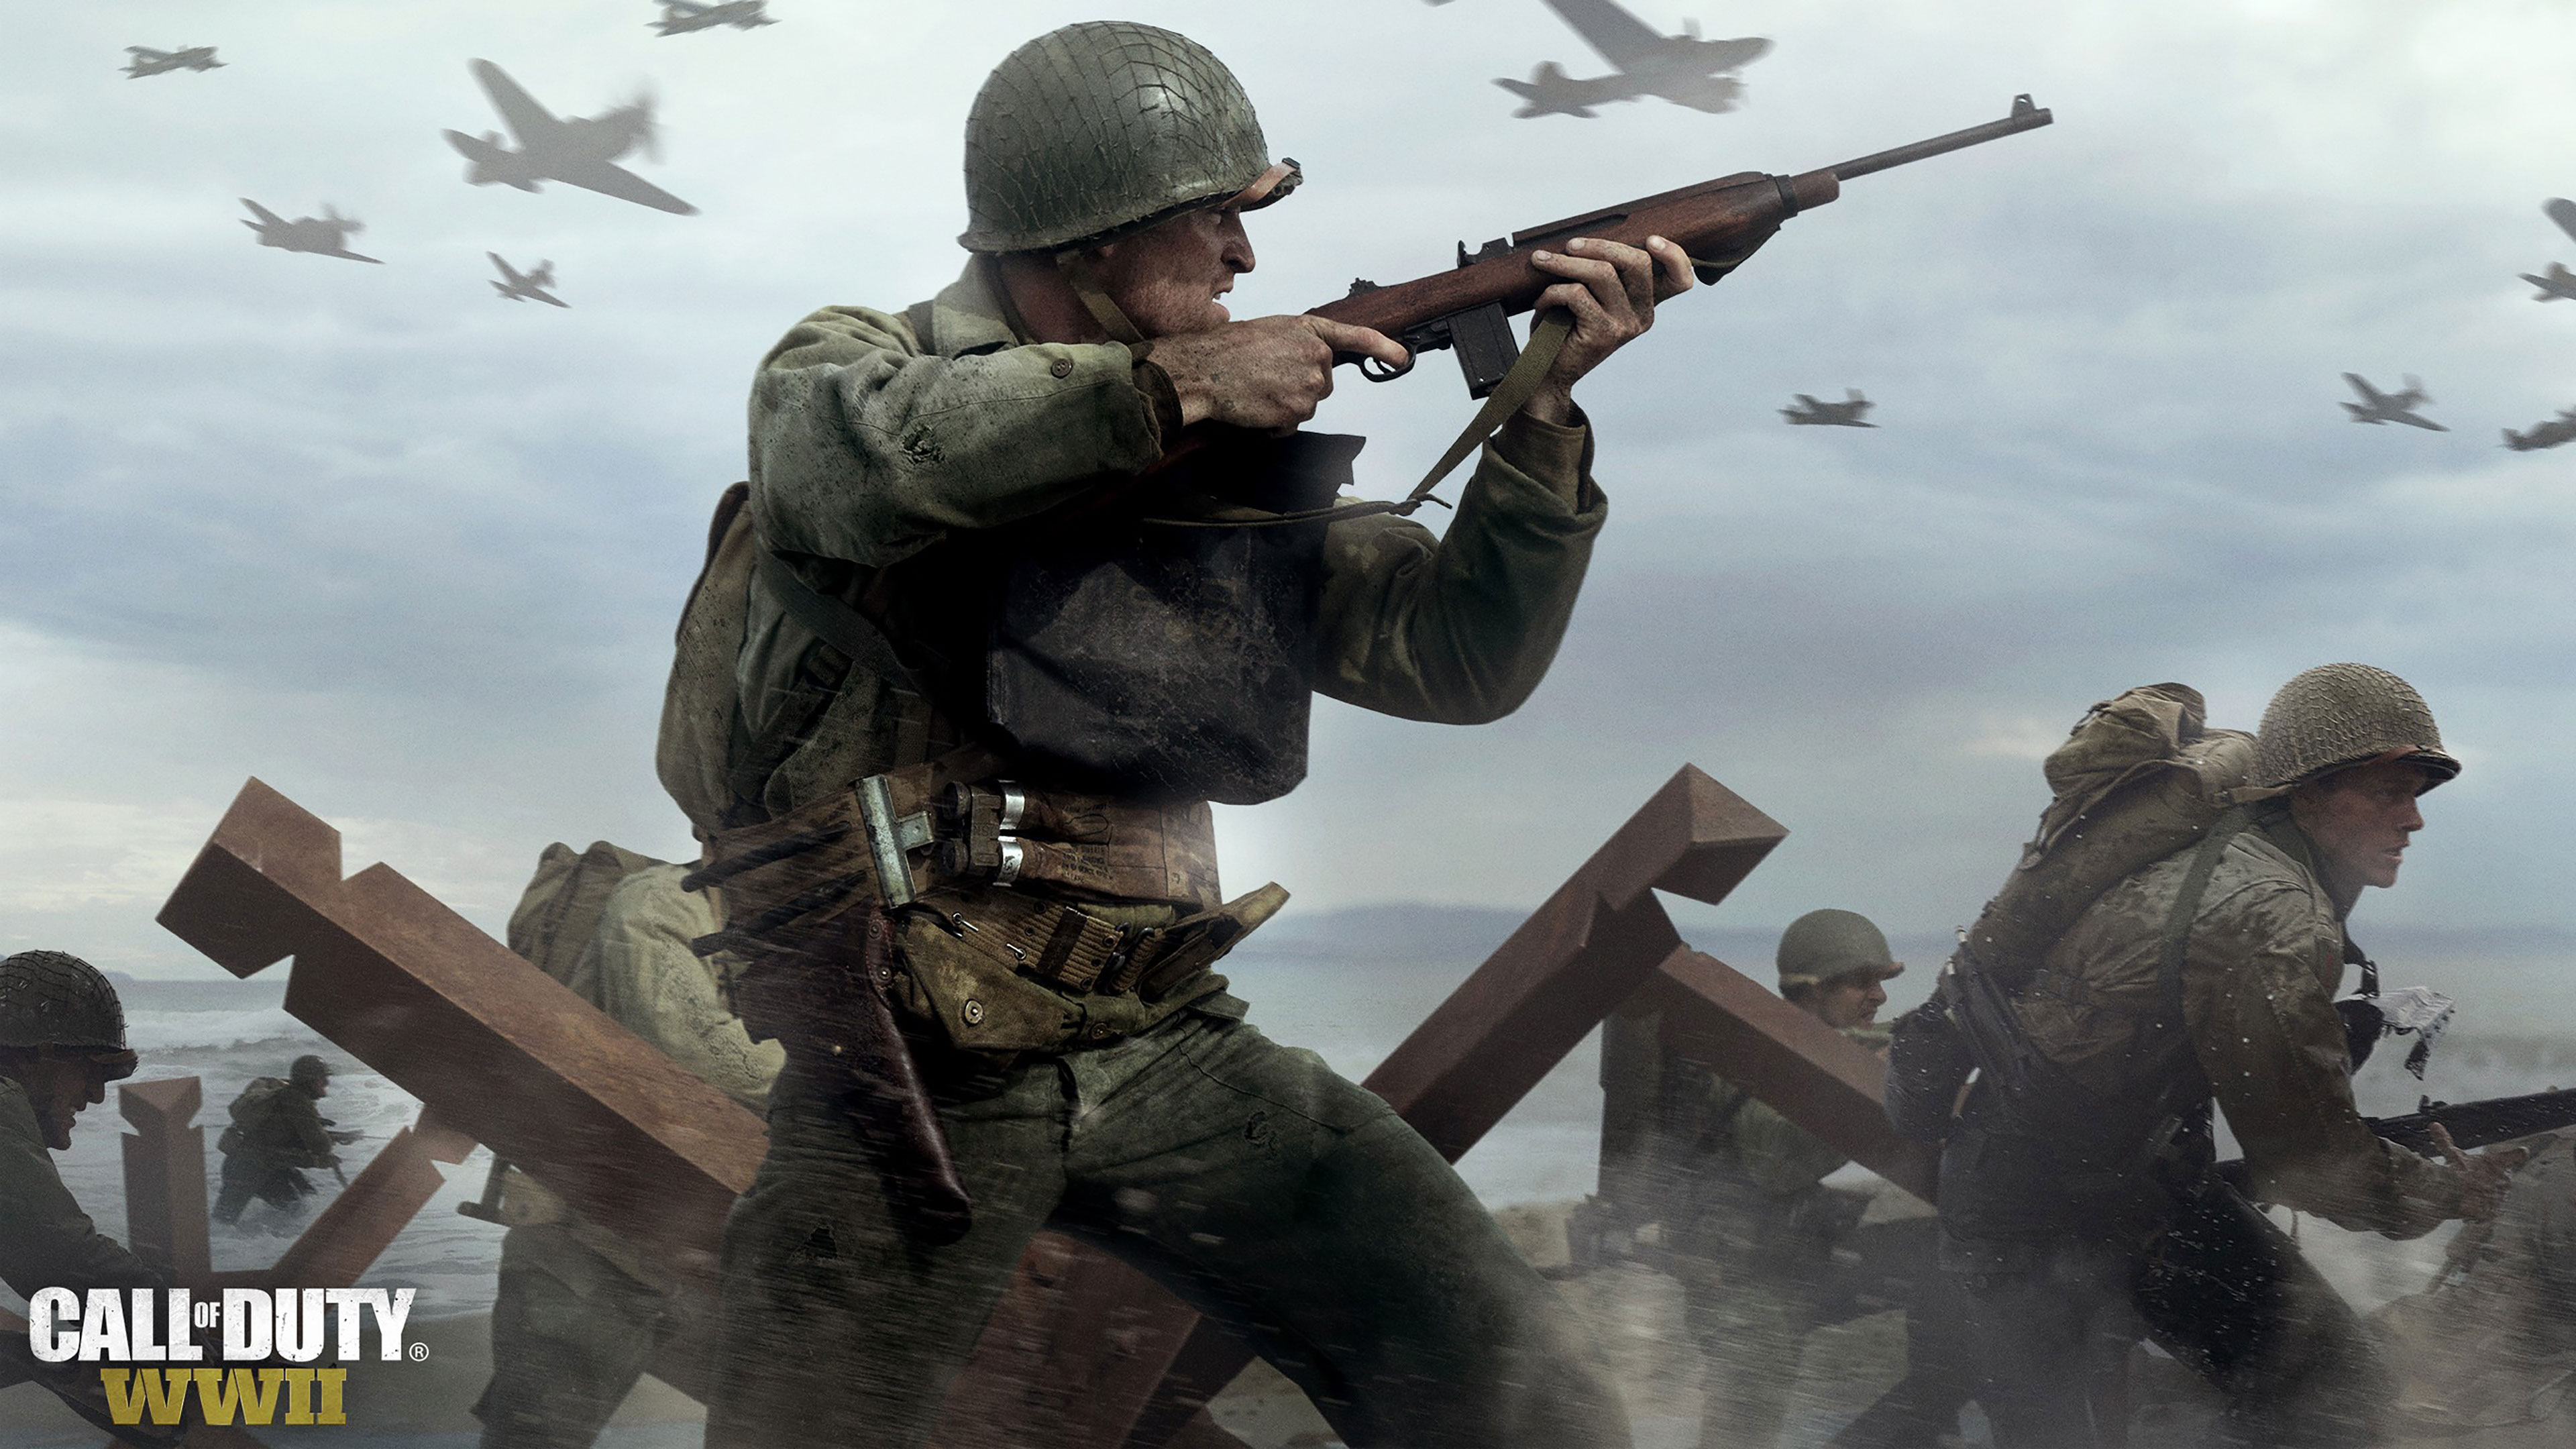 Call Of Duty Wwii 4k Wallpaper Call Of Duty Ww2 Live 551673